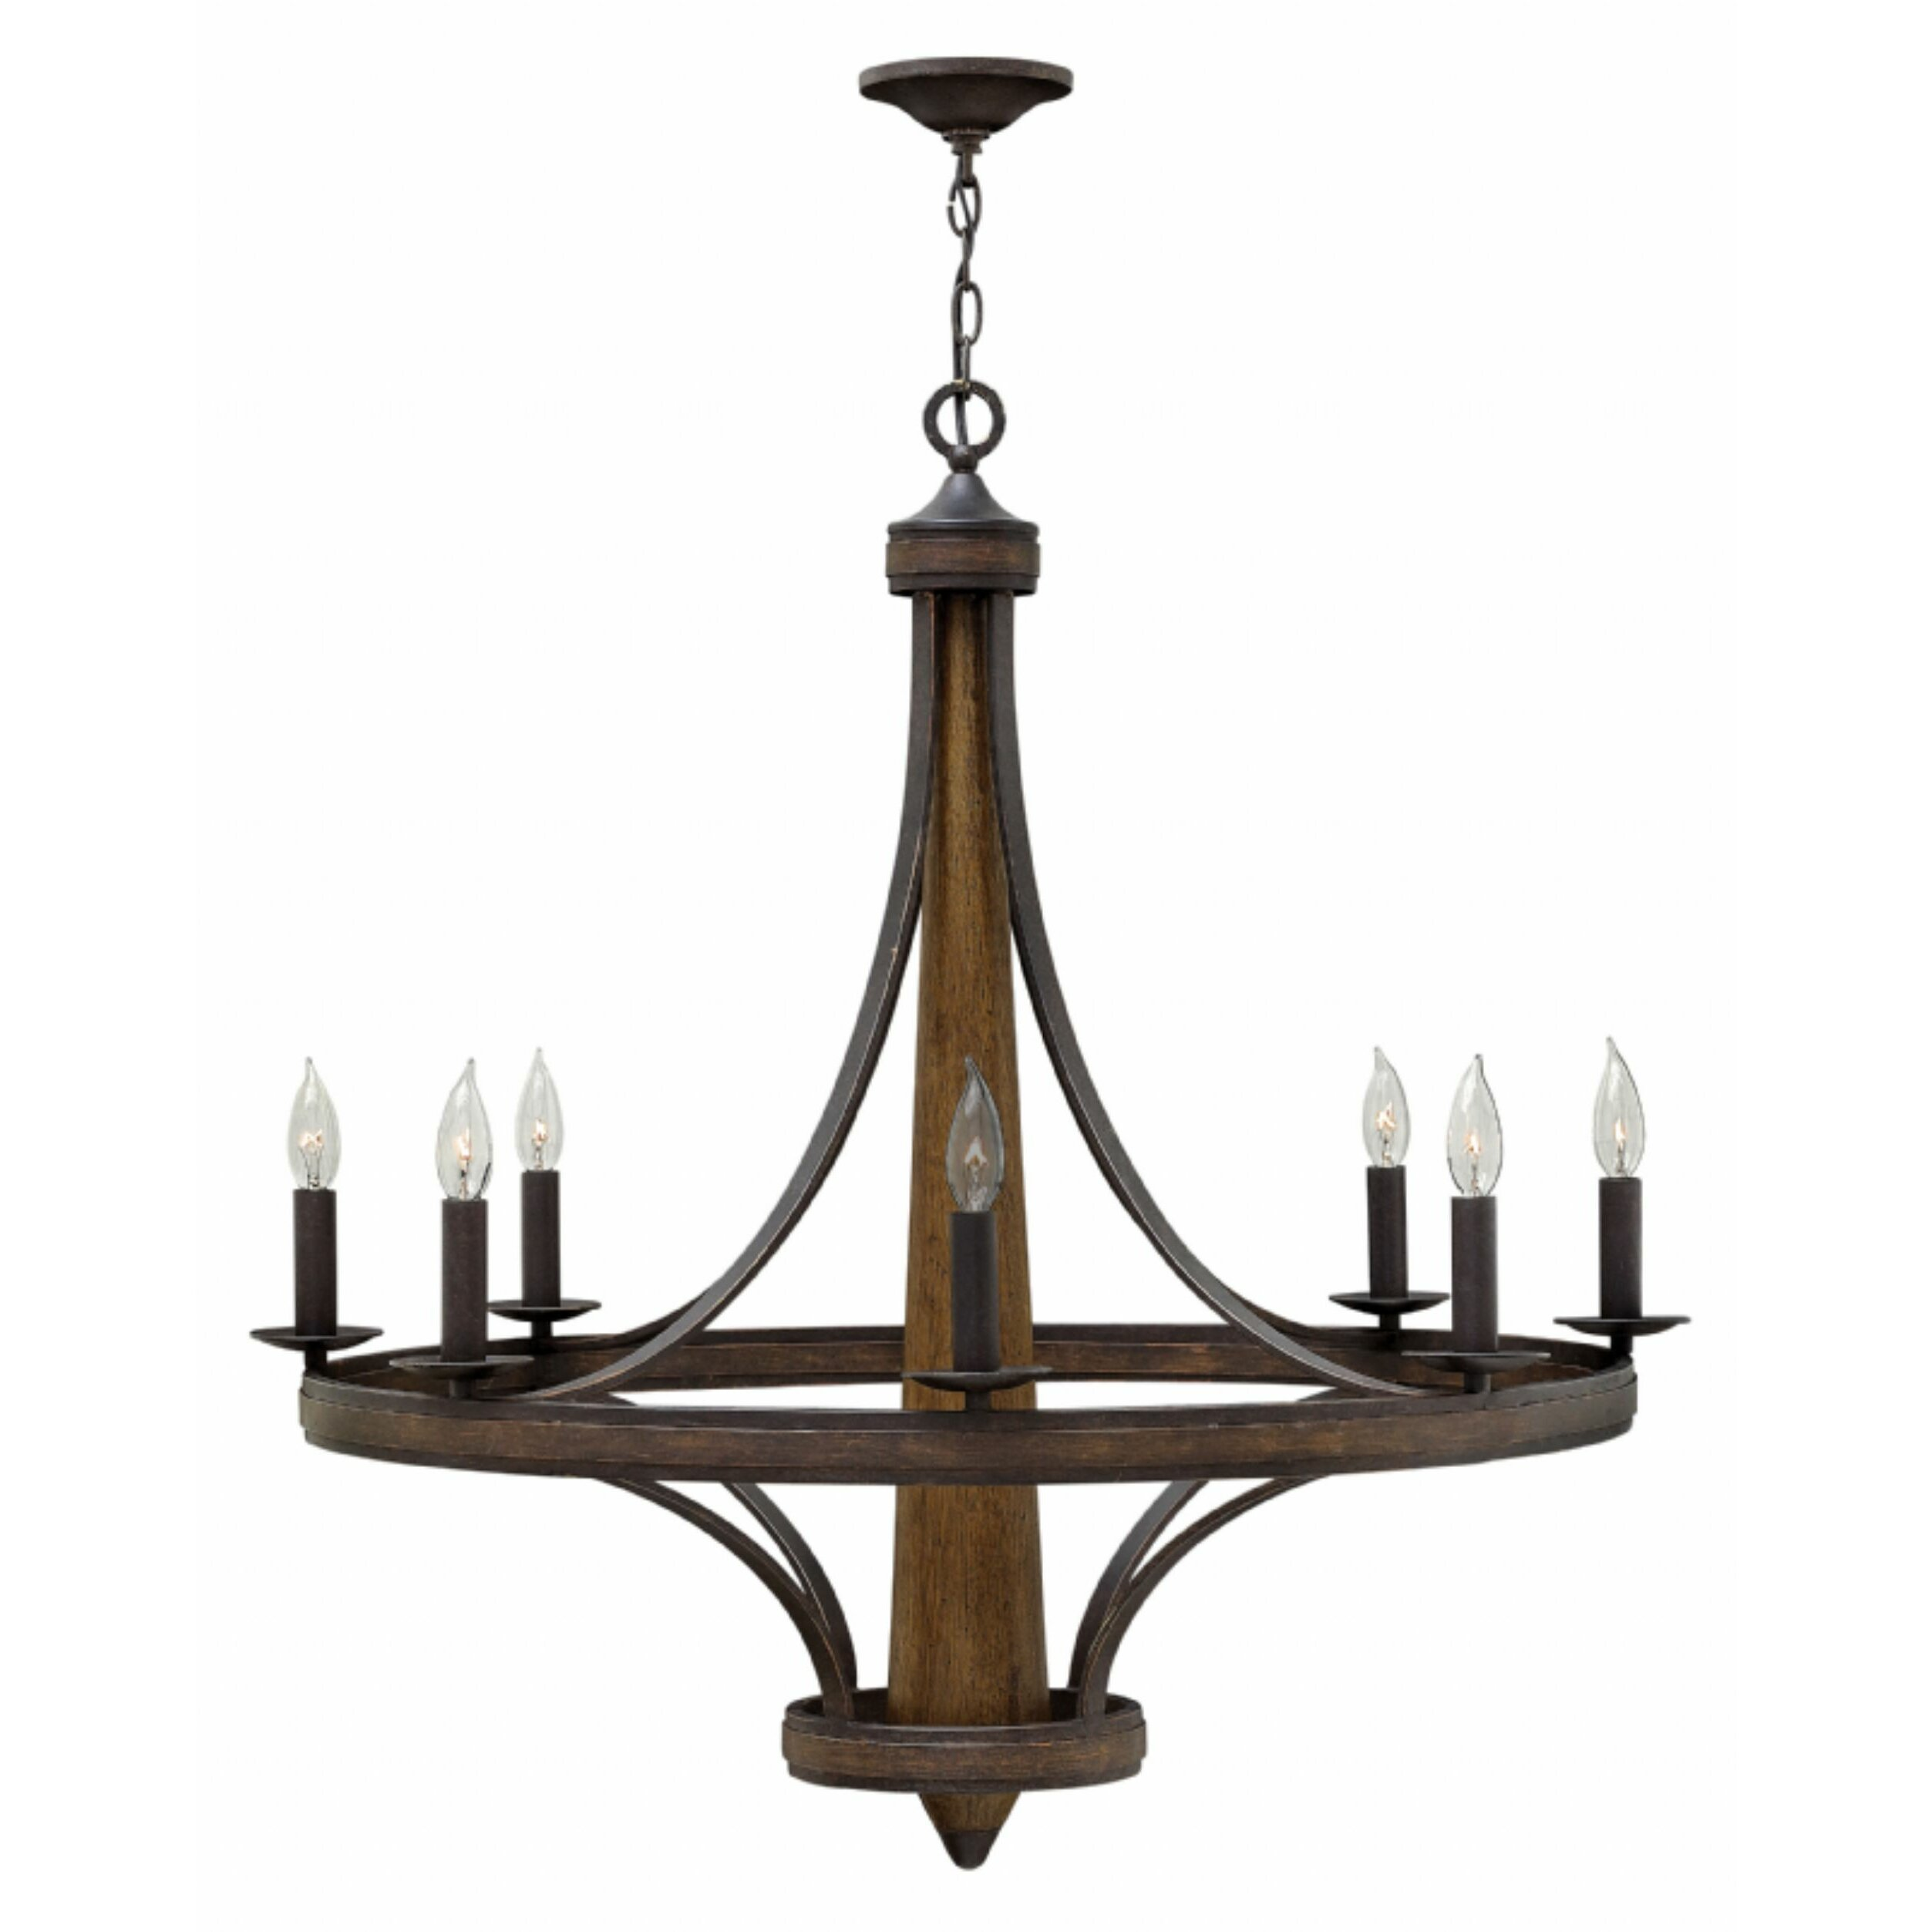 Wayfair Lights: Fredrick Ramond Bastille 8 Light Candle Chandelier